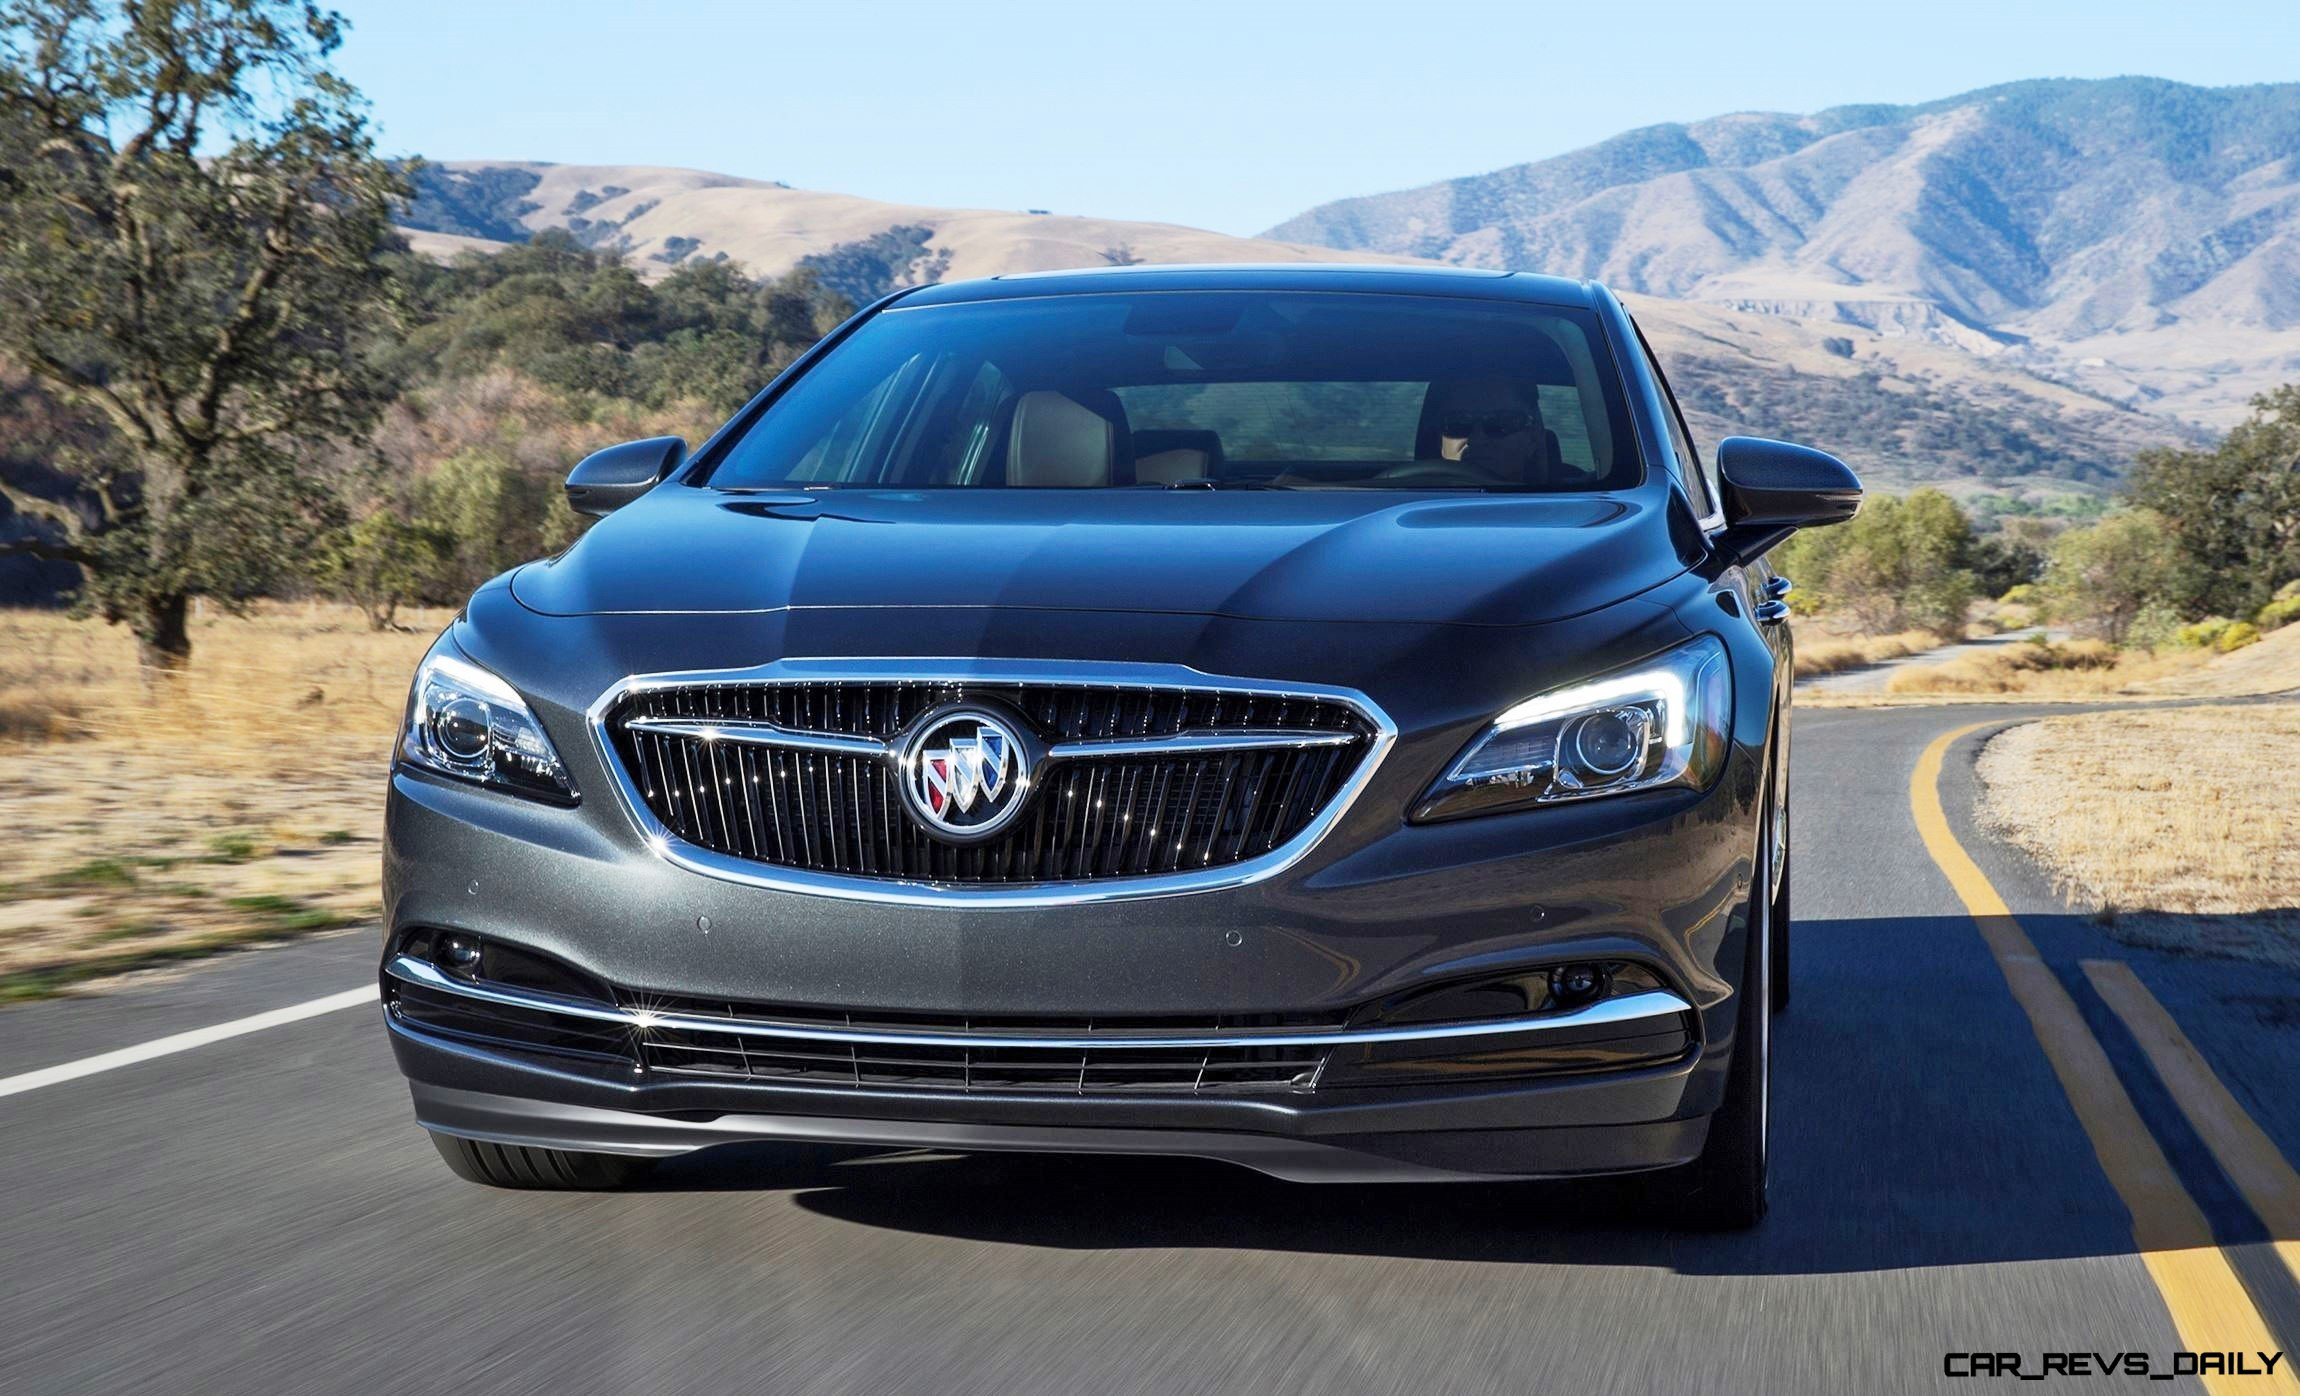 2017 Buick Lacrosse - All-New Luxury Limo Is Truly Plush New 2022 Buick Lacrosse Images, Inside, Length